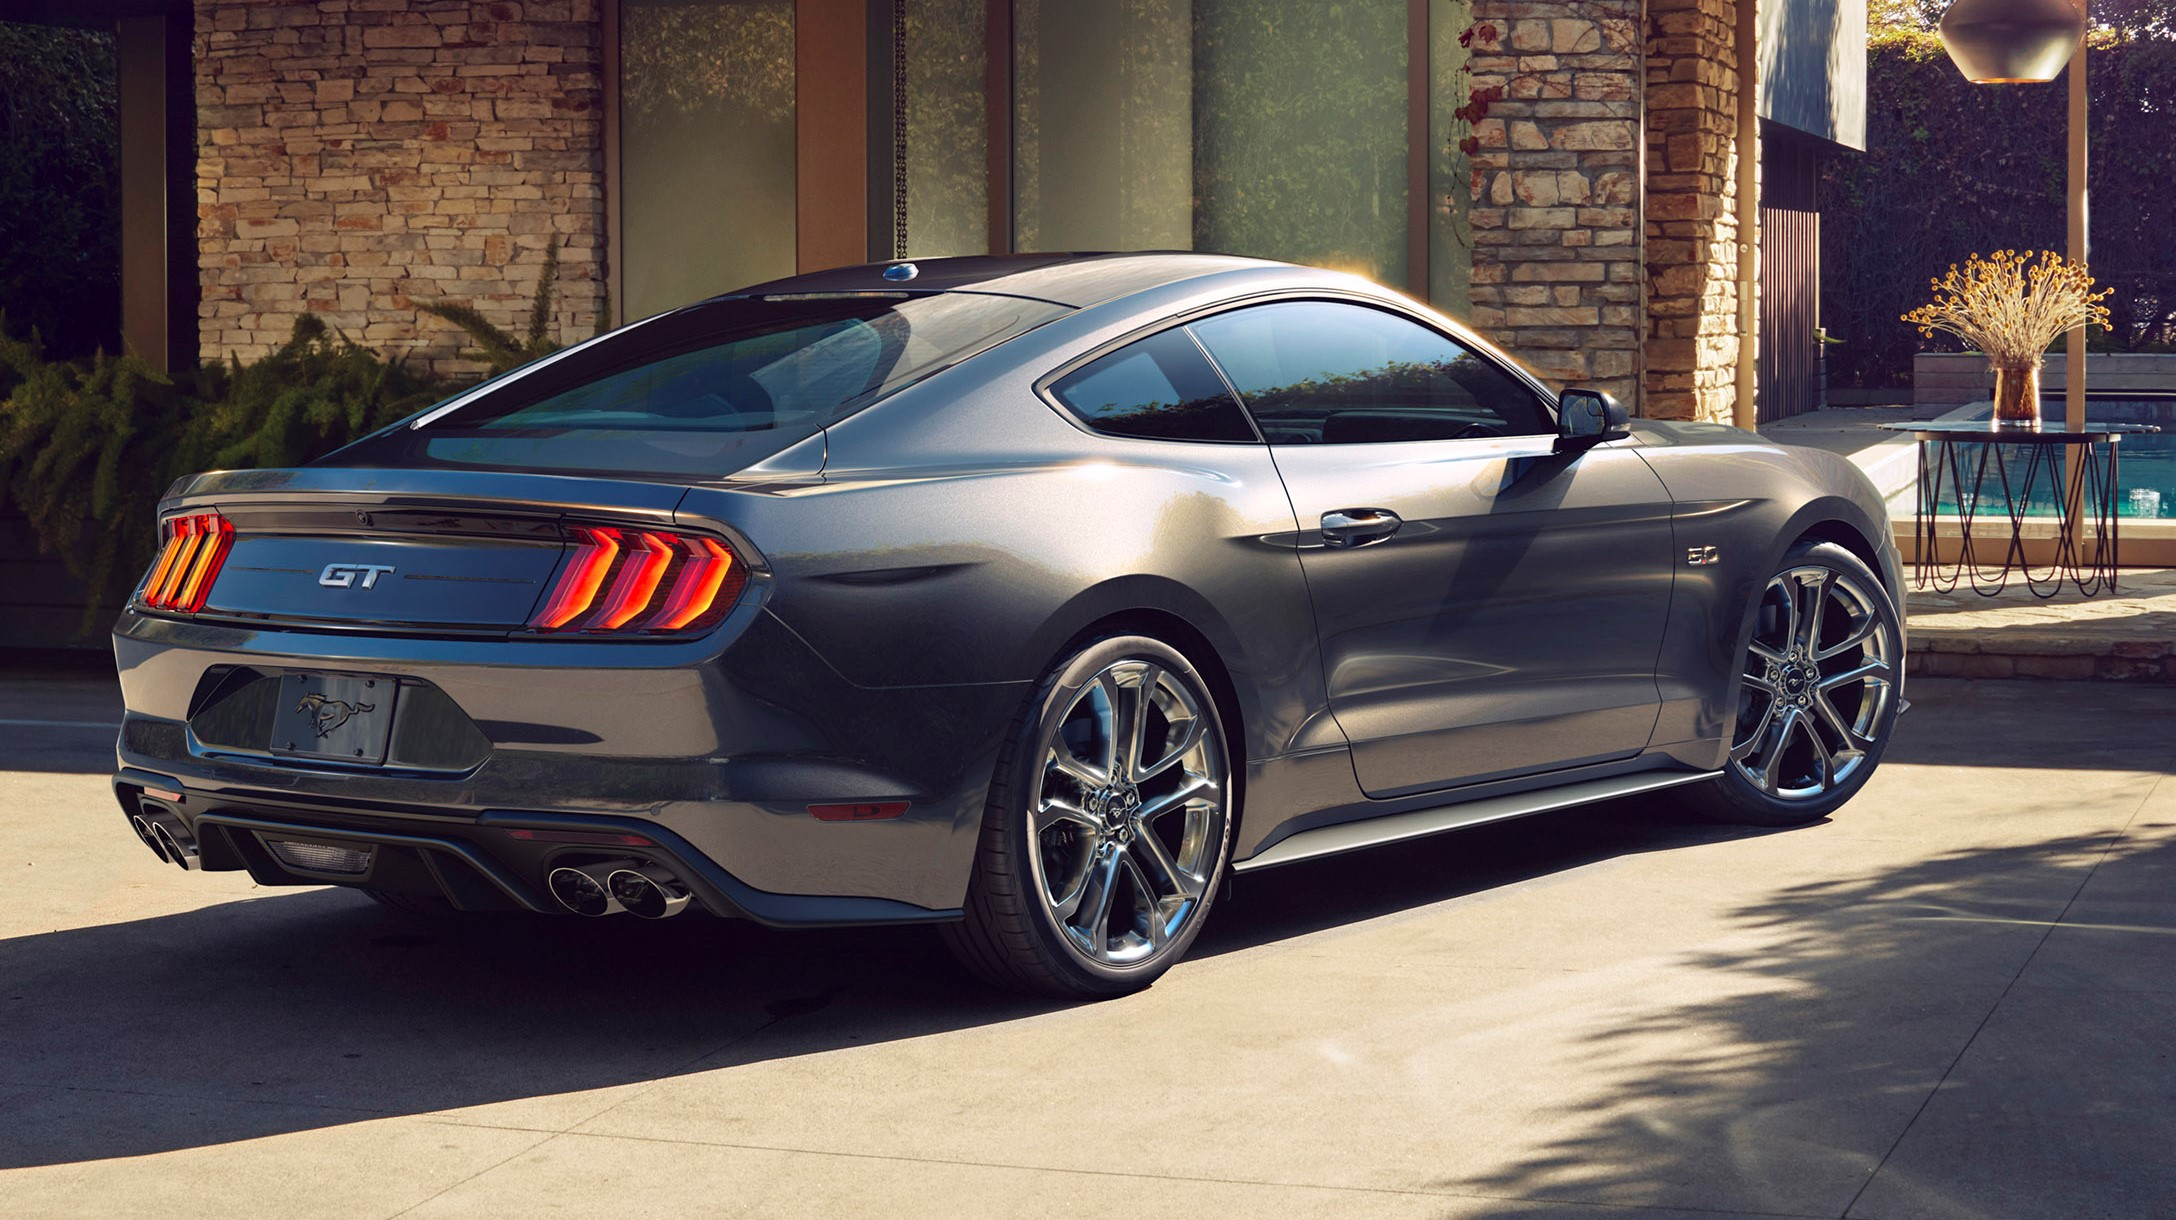 2018 MUSTANG SLEEKER AND IMPROVED PERFORMANCE ...